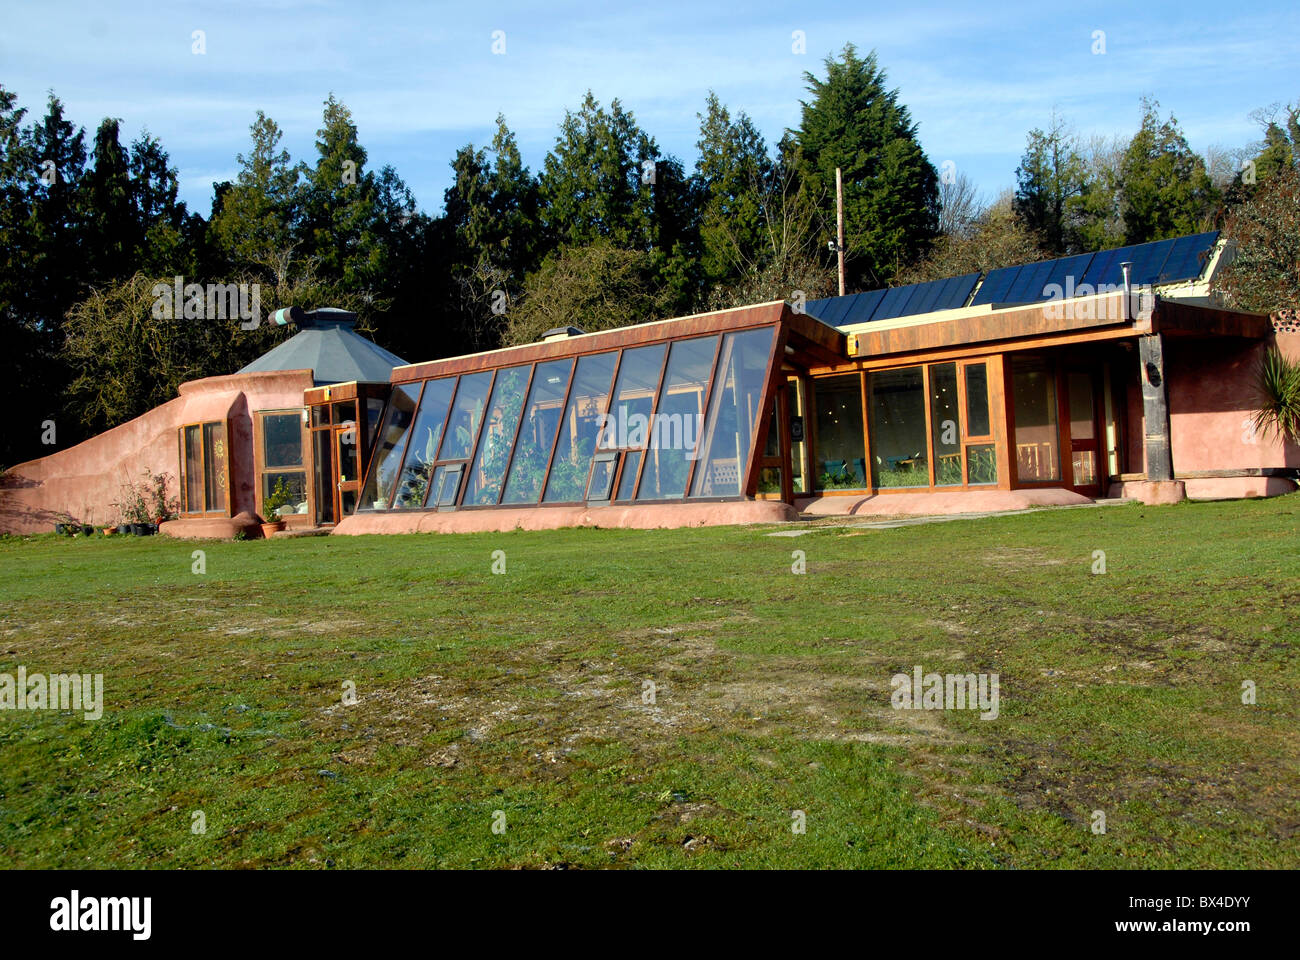 Earthship Brighton The First Earthship To Be Built From Recycled Rubber  Tyres In The UK, Stanmer Park, Brighton, UK